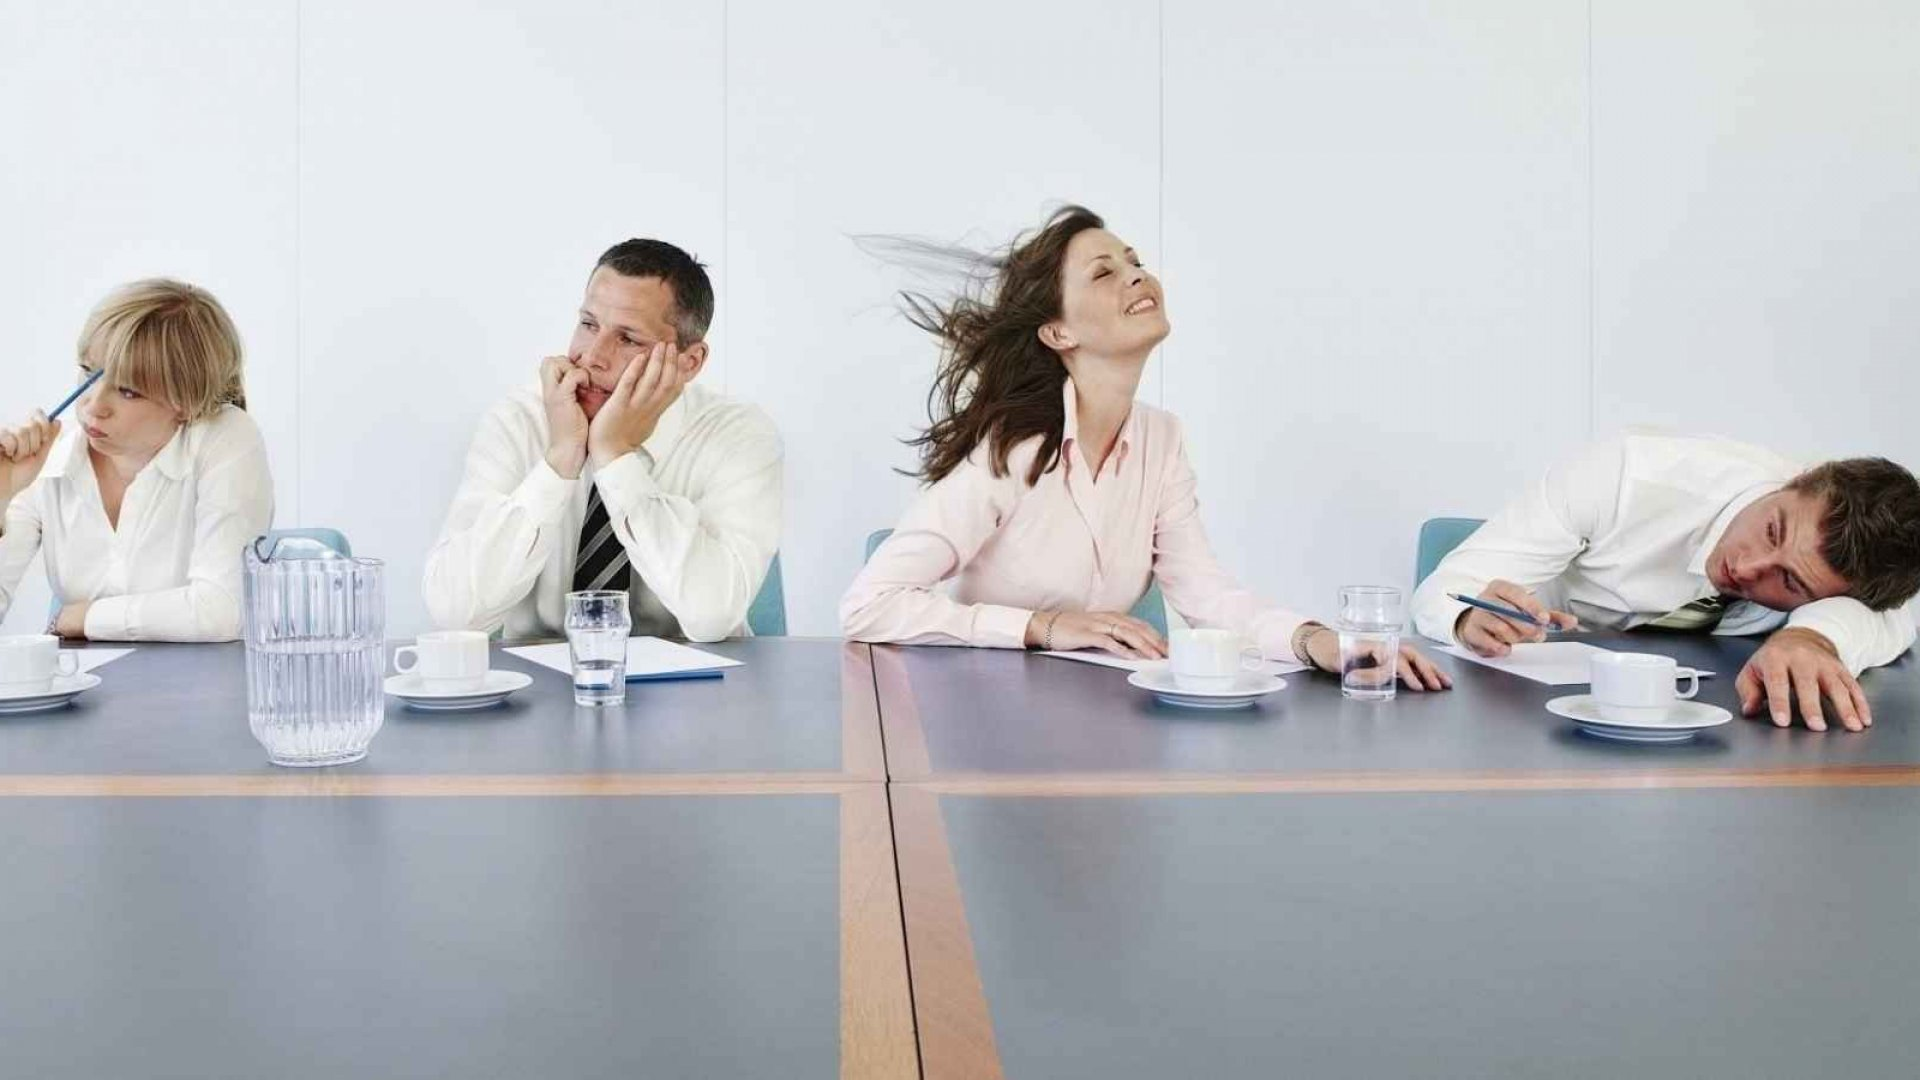 We Waste $37B Annually On Meetings. Here's How to Revolutionize Your Next One